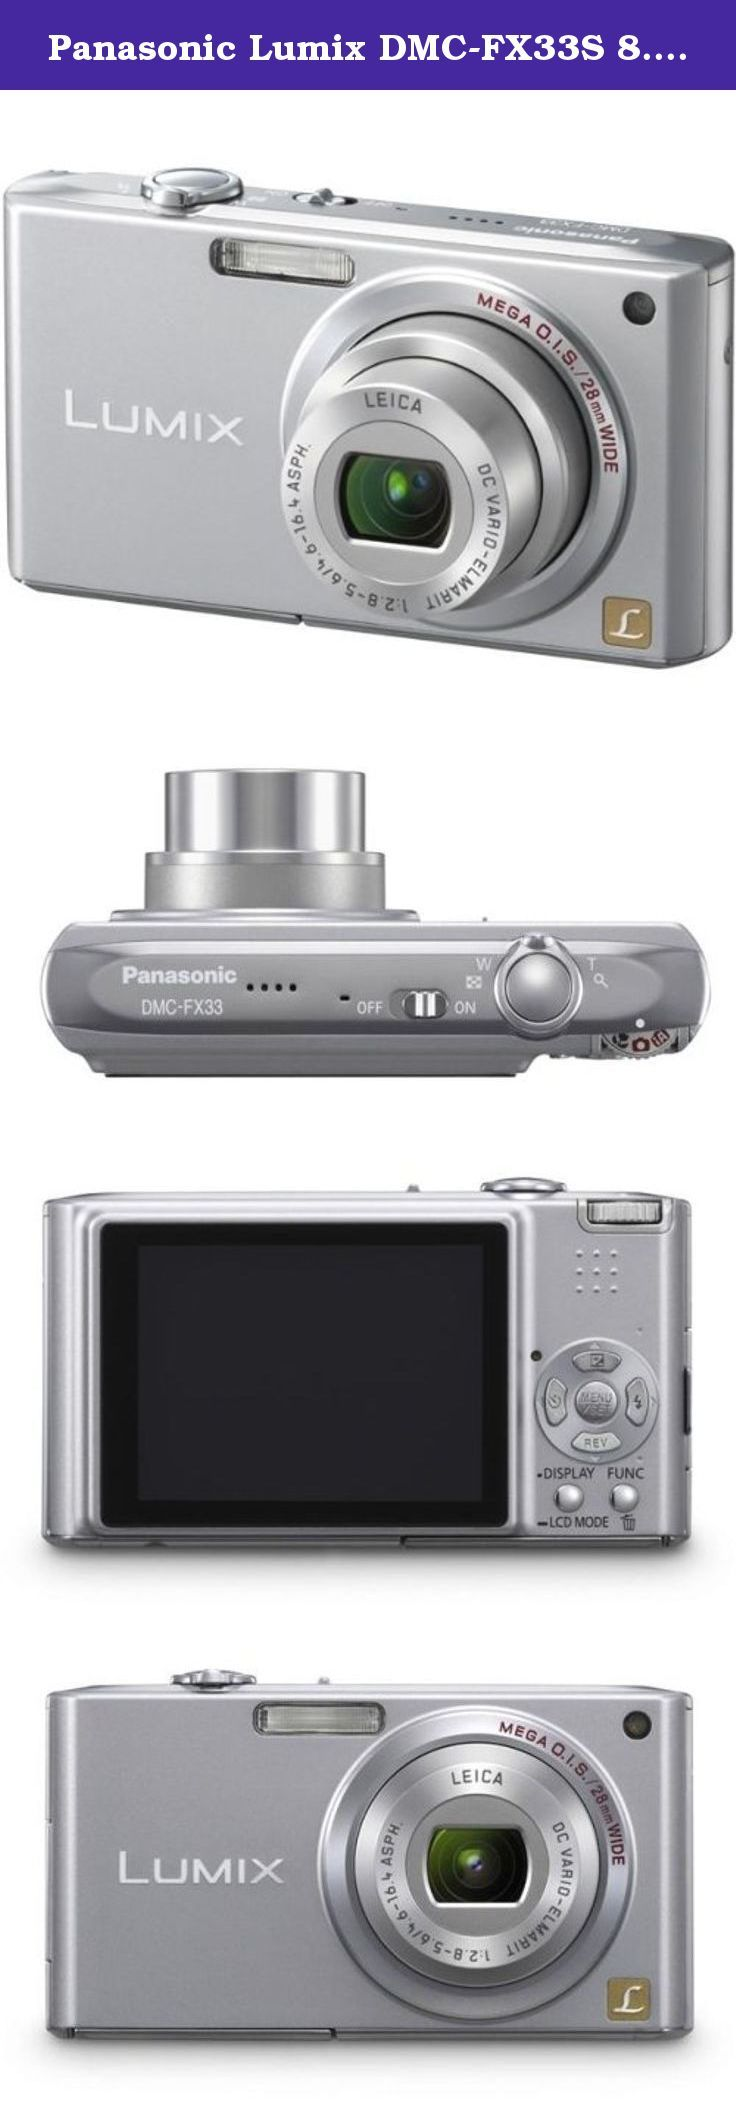 Panasonic Lumix DMC-FX33S 8.1MP Digital Camera with 3.6x Wide Angle MEGA Optical Image Stabilized Zoom (Silver). The Panasonic DMC-FX33S Lumix 8.1 Megapixel Digital Camera comes equipped with advanced Mega O.I.S. Optical Image Stabilization that detects even the tiniest camera movement so it can automatically adjust the lens to compensate. Get clear pictures every time without any loss of image detail or clarity with Mega O.I.S. This camera will not only help eliminate blurring from...